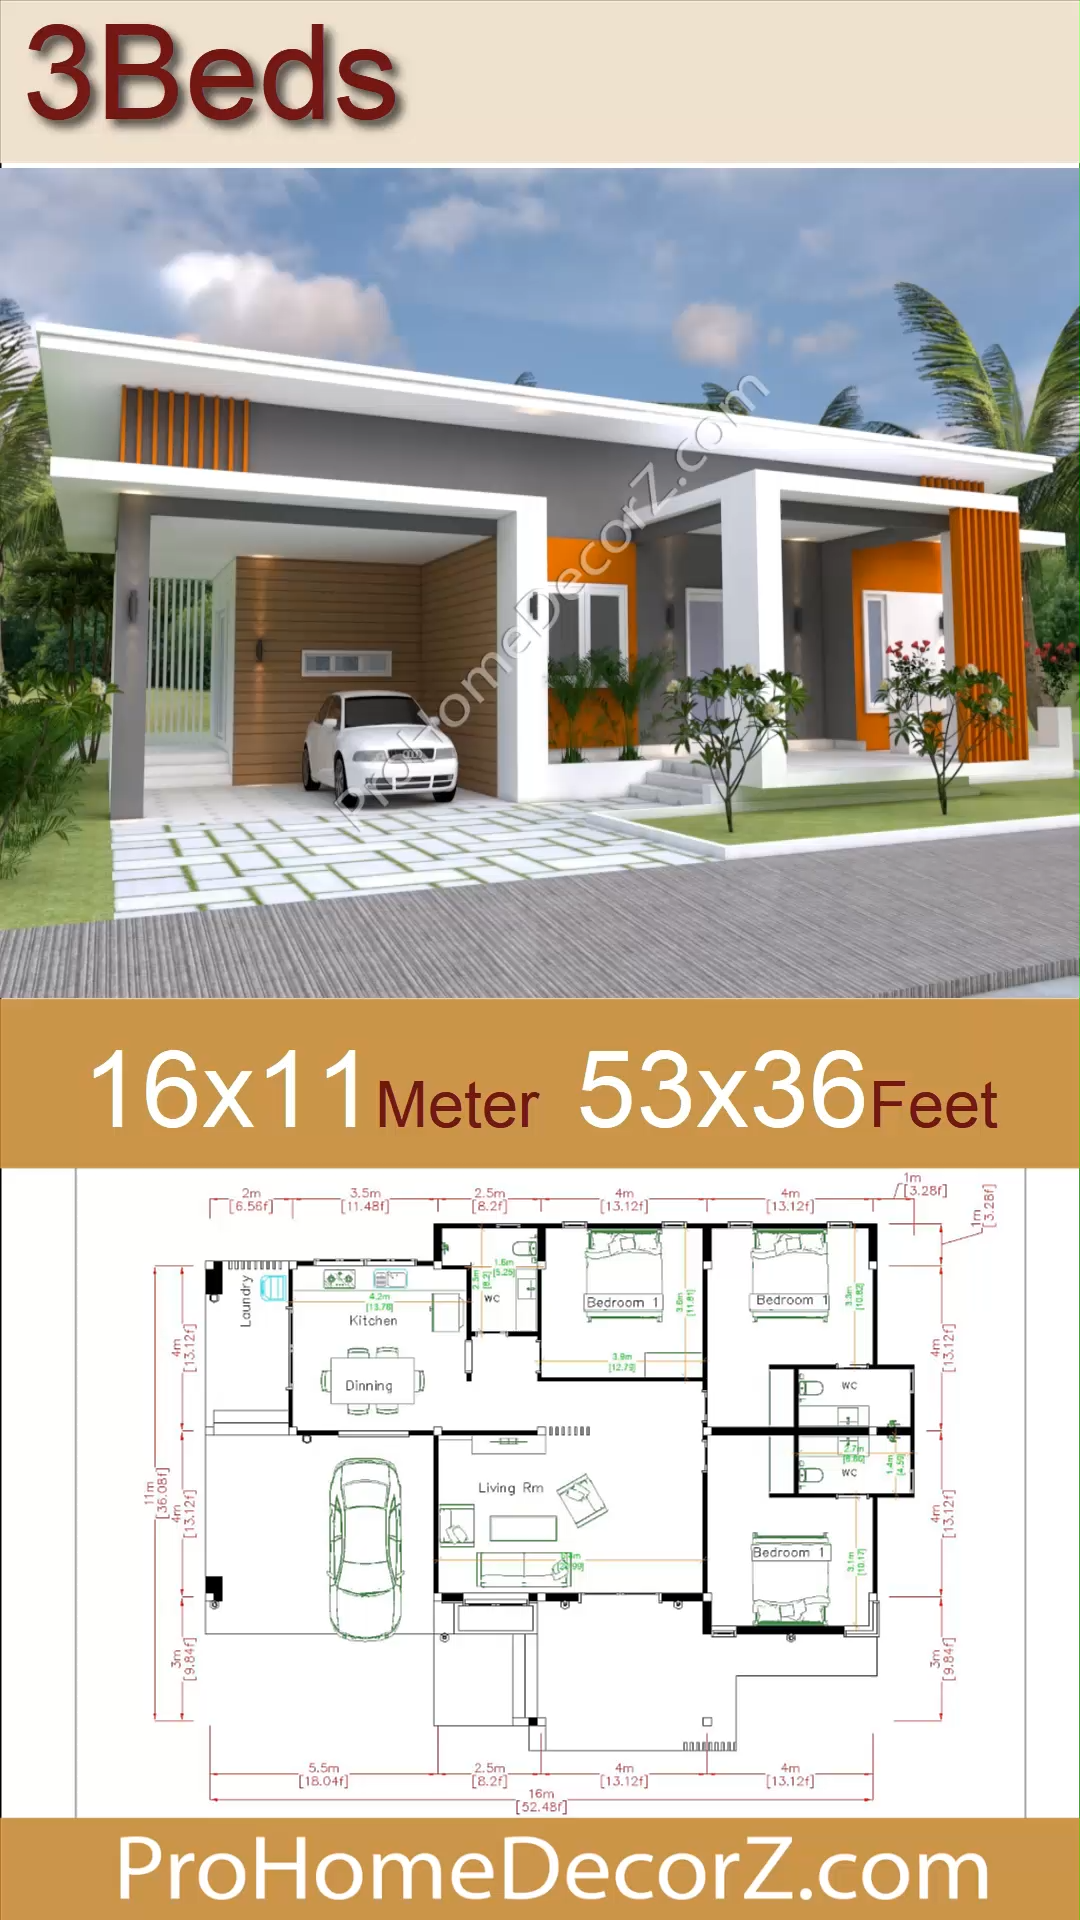 Photo of House Designs Plans 16×11 Meter 53×36 Feet 3 Beds